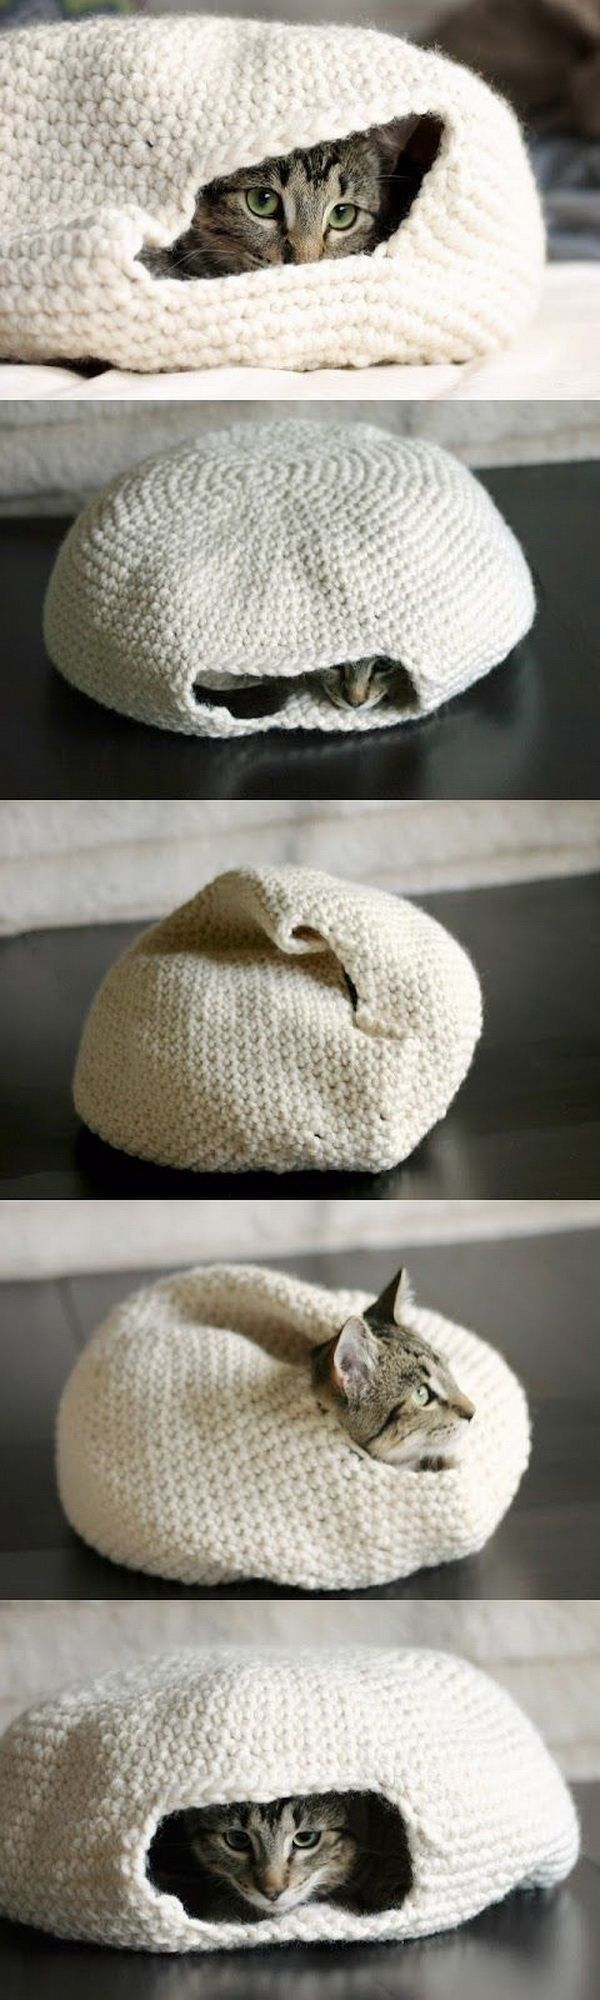 Easy Crochet Cozy Nest for Your Cat. Make this cute crocheted nest to keep your lovely cat warm in the winter. It's easy and fun to crochet even for beginners.